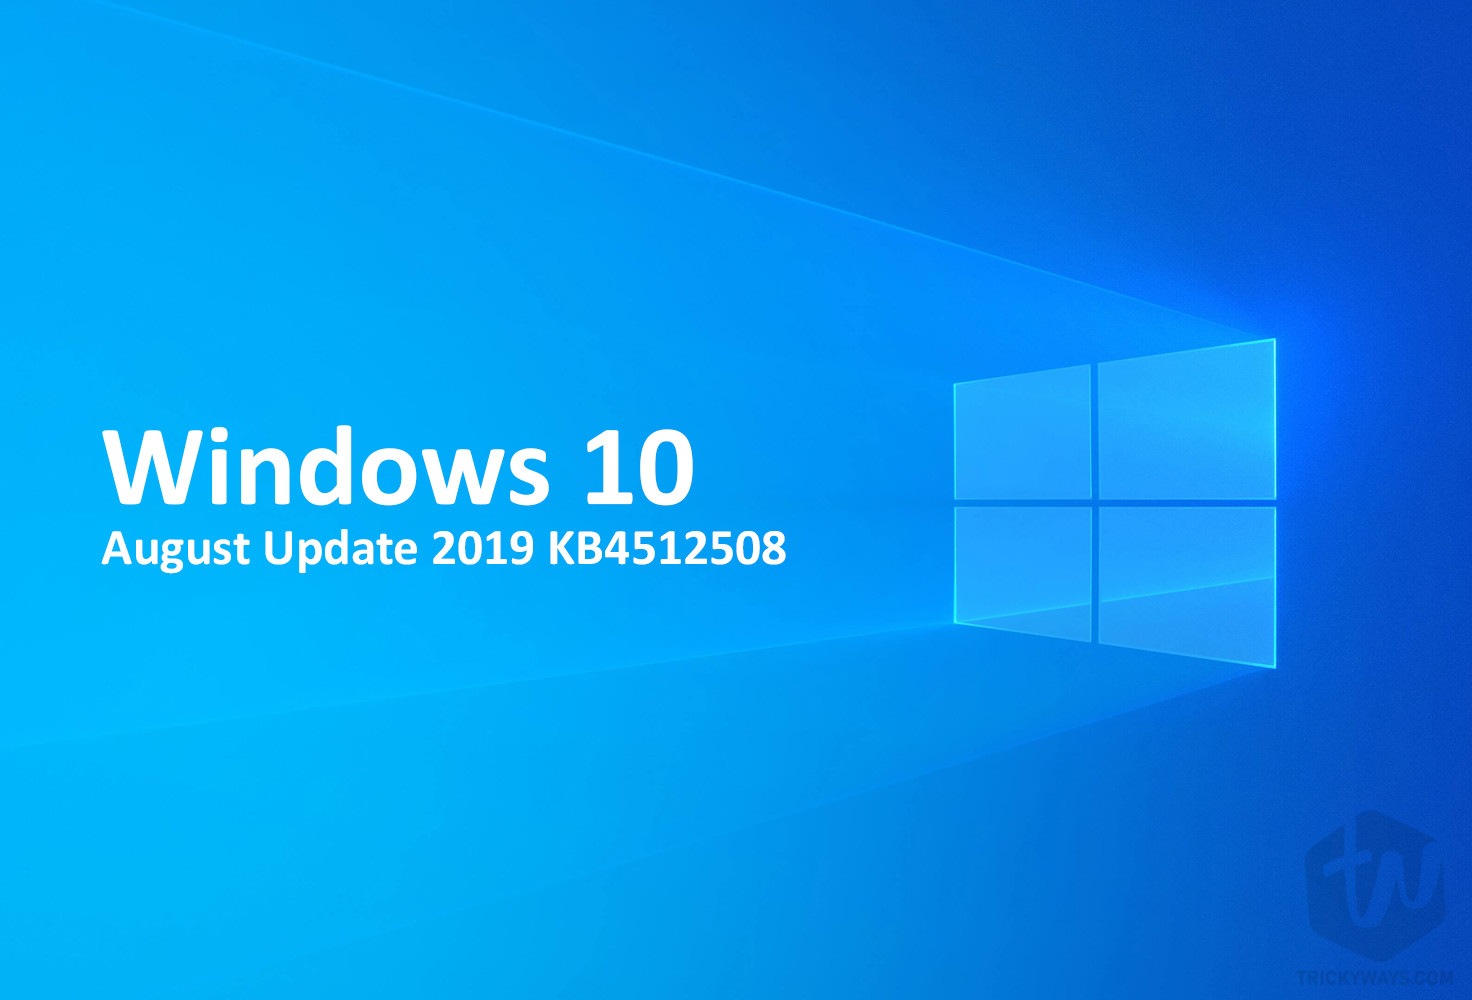 Windows 10 August Update 2019 KB4512508